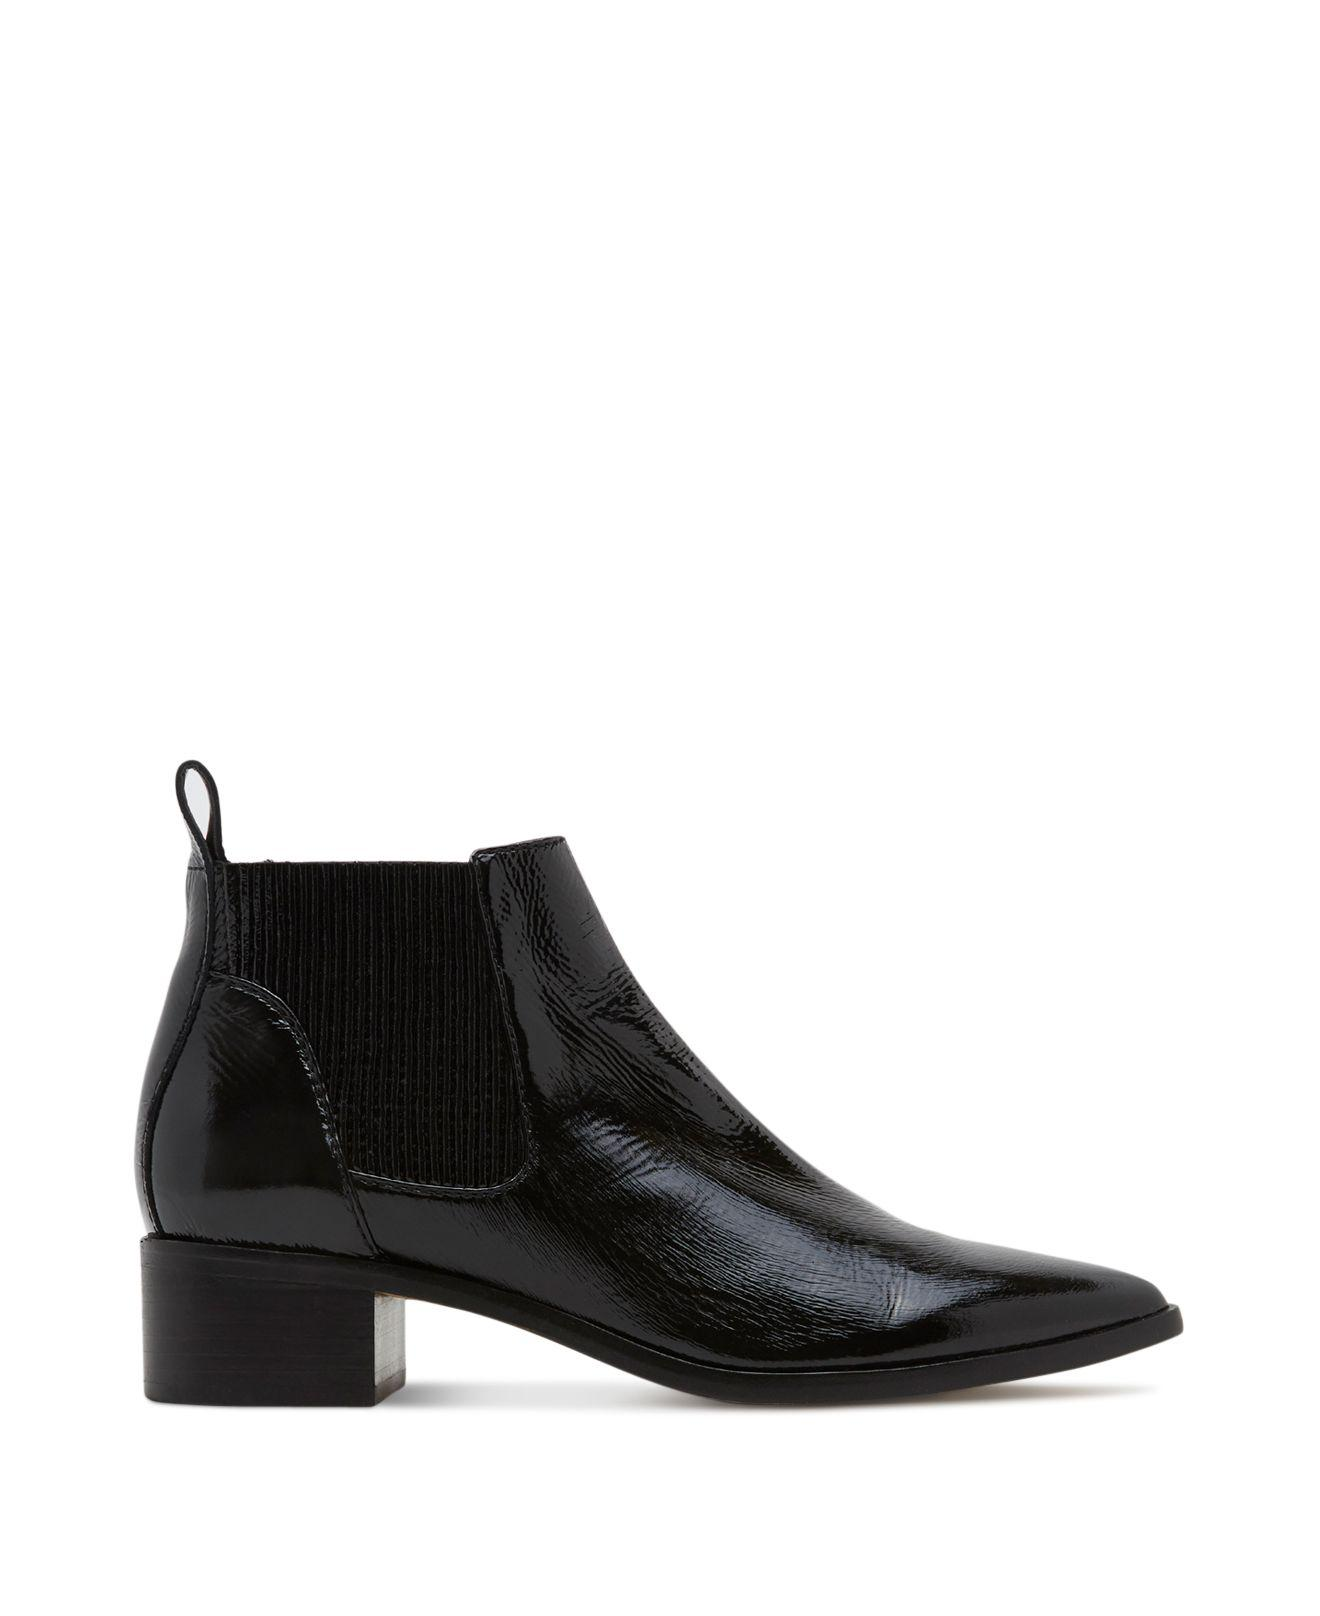 Dolce Vita Macie Patent Leather Chelsea Booties in Black